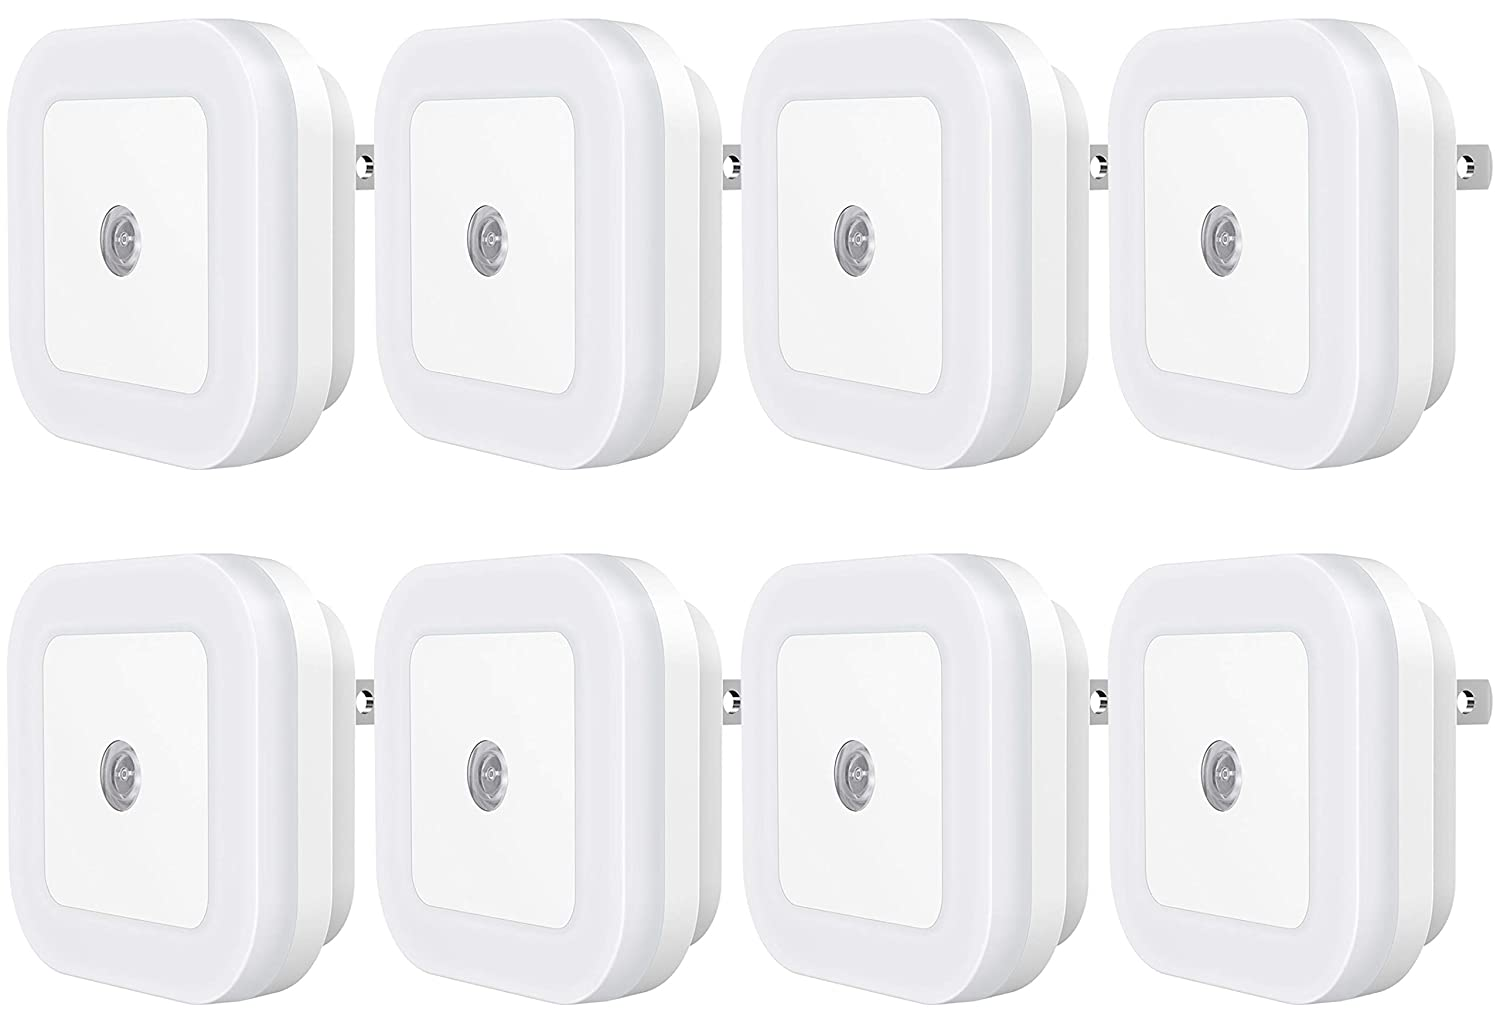 Sycees Plug-in LED Night Light with Dusk-to-Dawn Sensor for Bedroom, Bathroom, Kitchen, Hallway, Stairs, Daylight White, 8-Pack